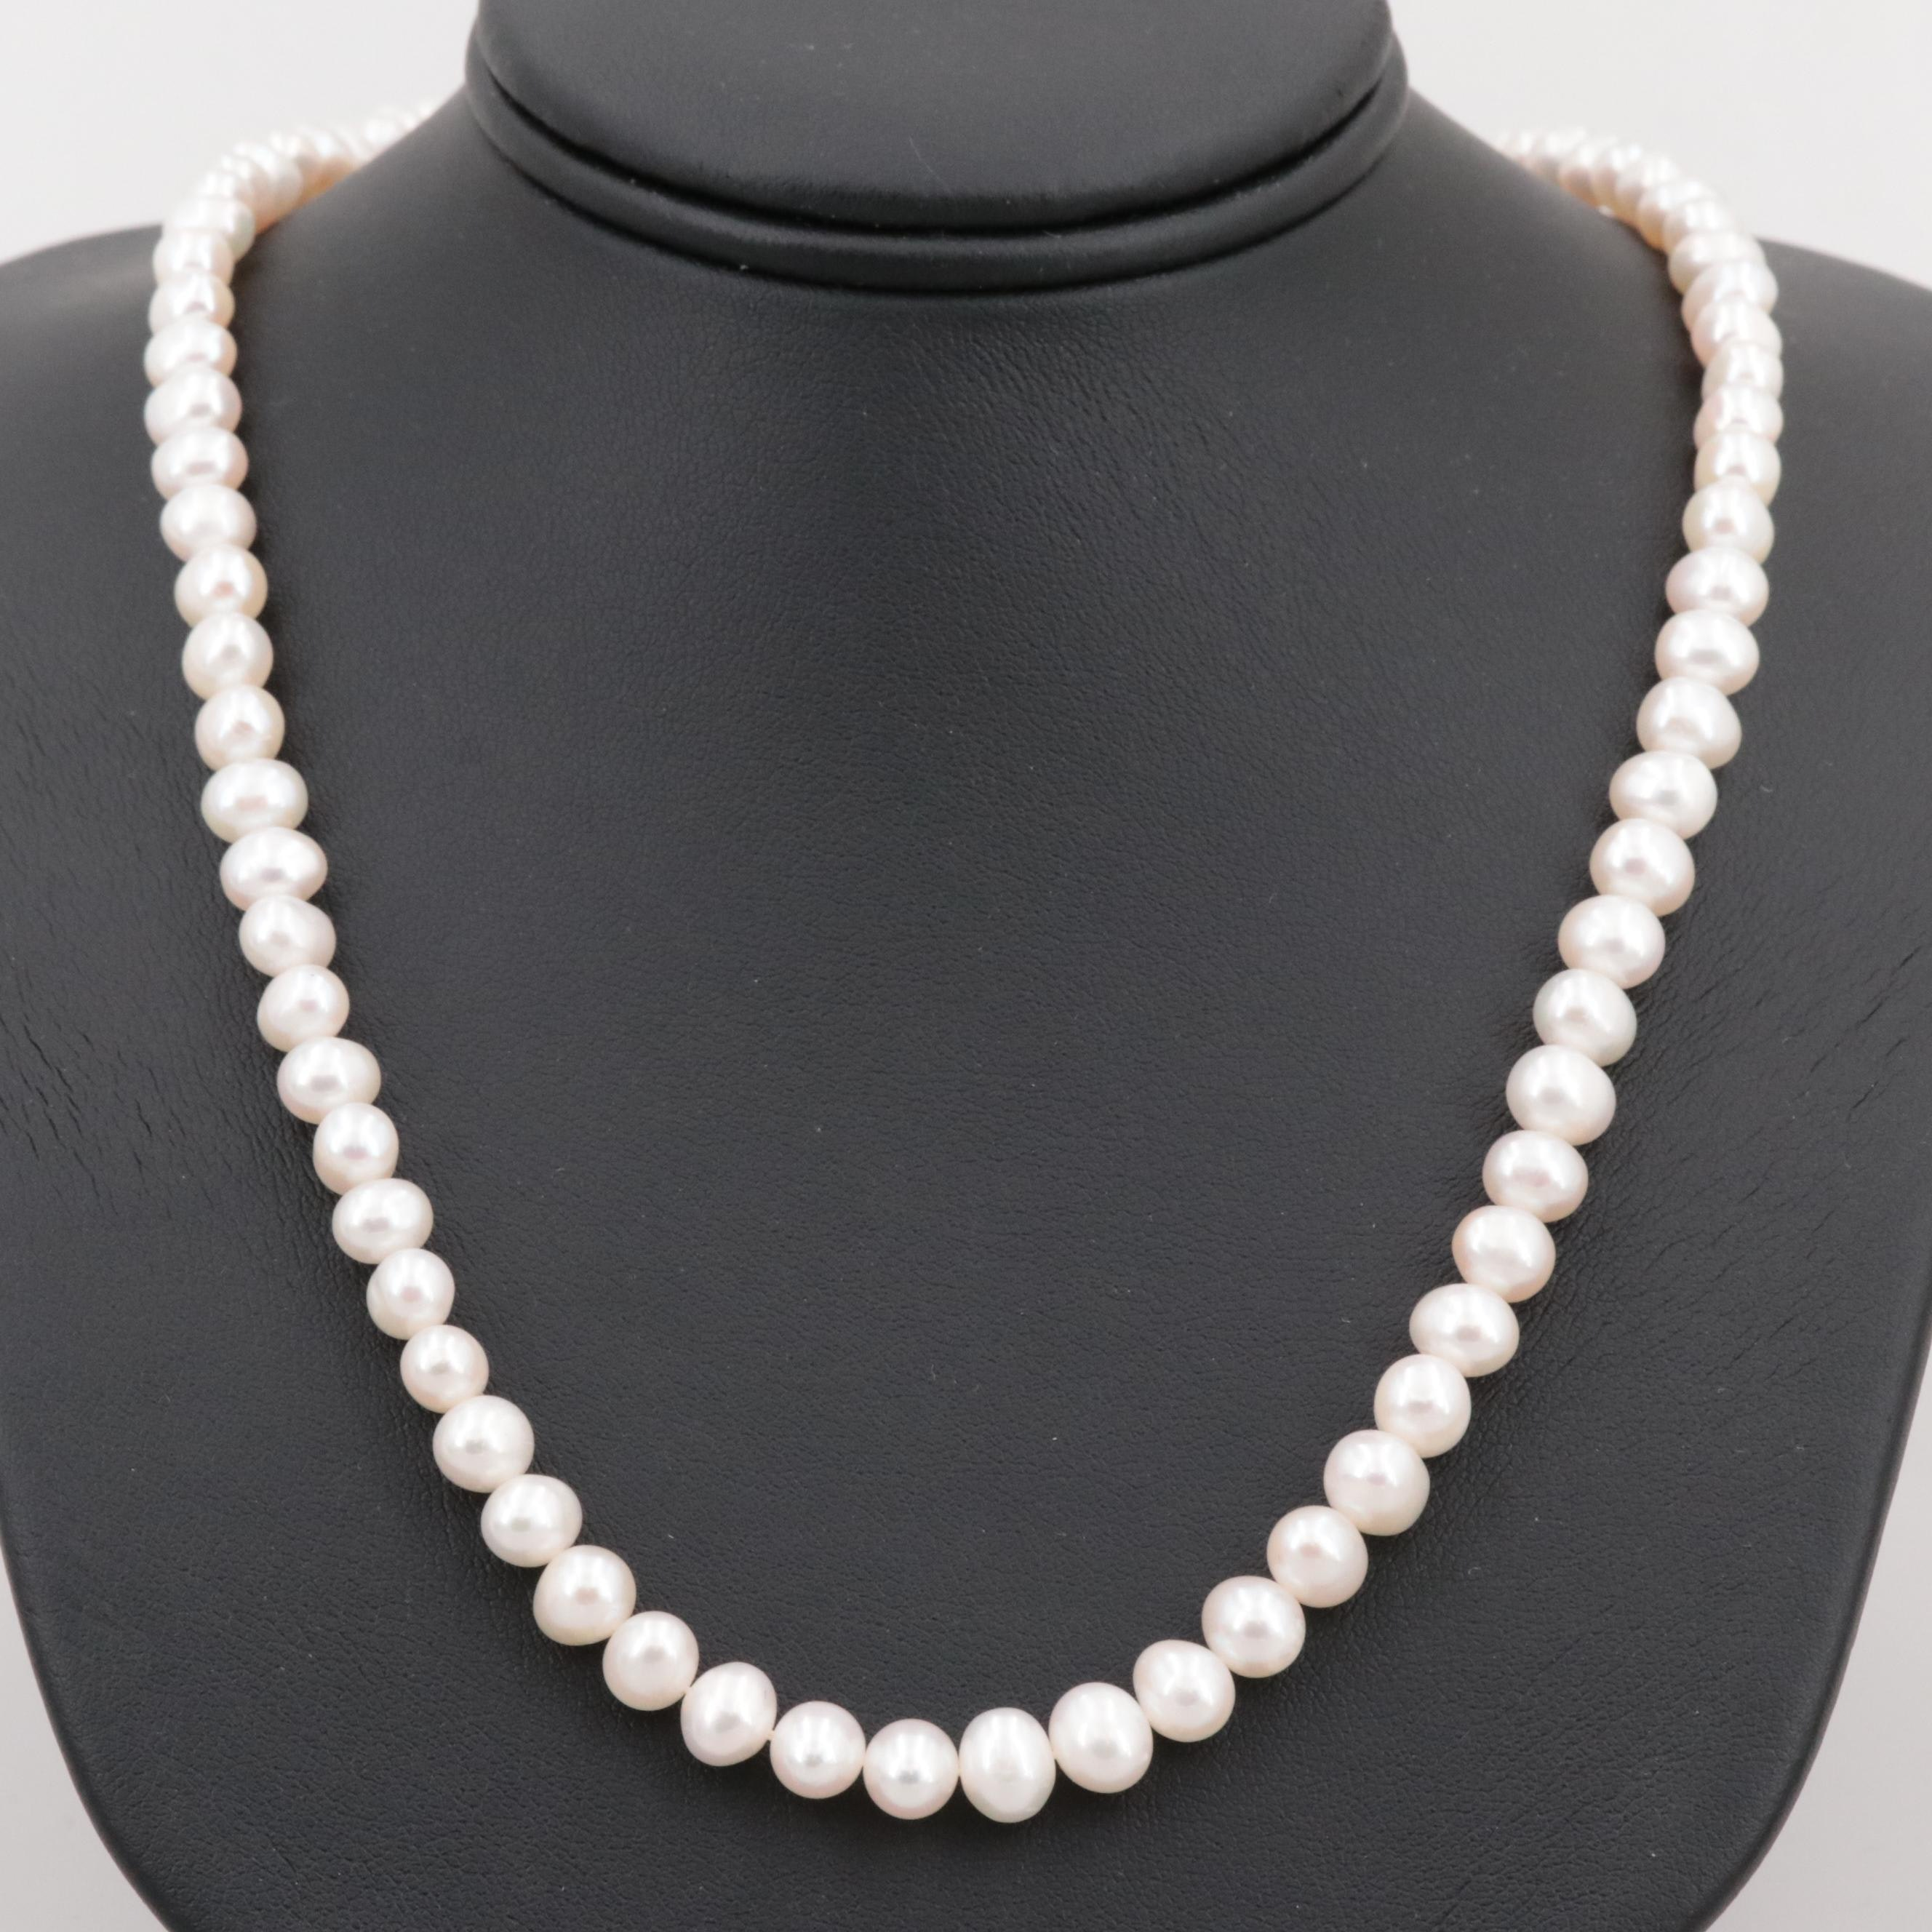 Gold Tone Cultured Pearl and Imitation Pearl Necklace